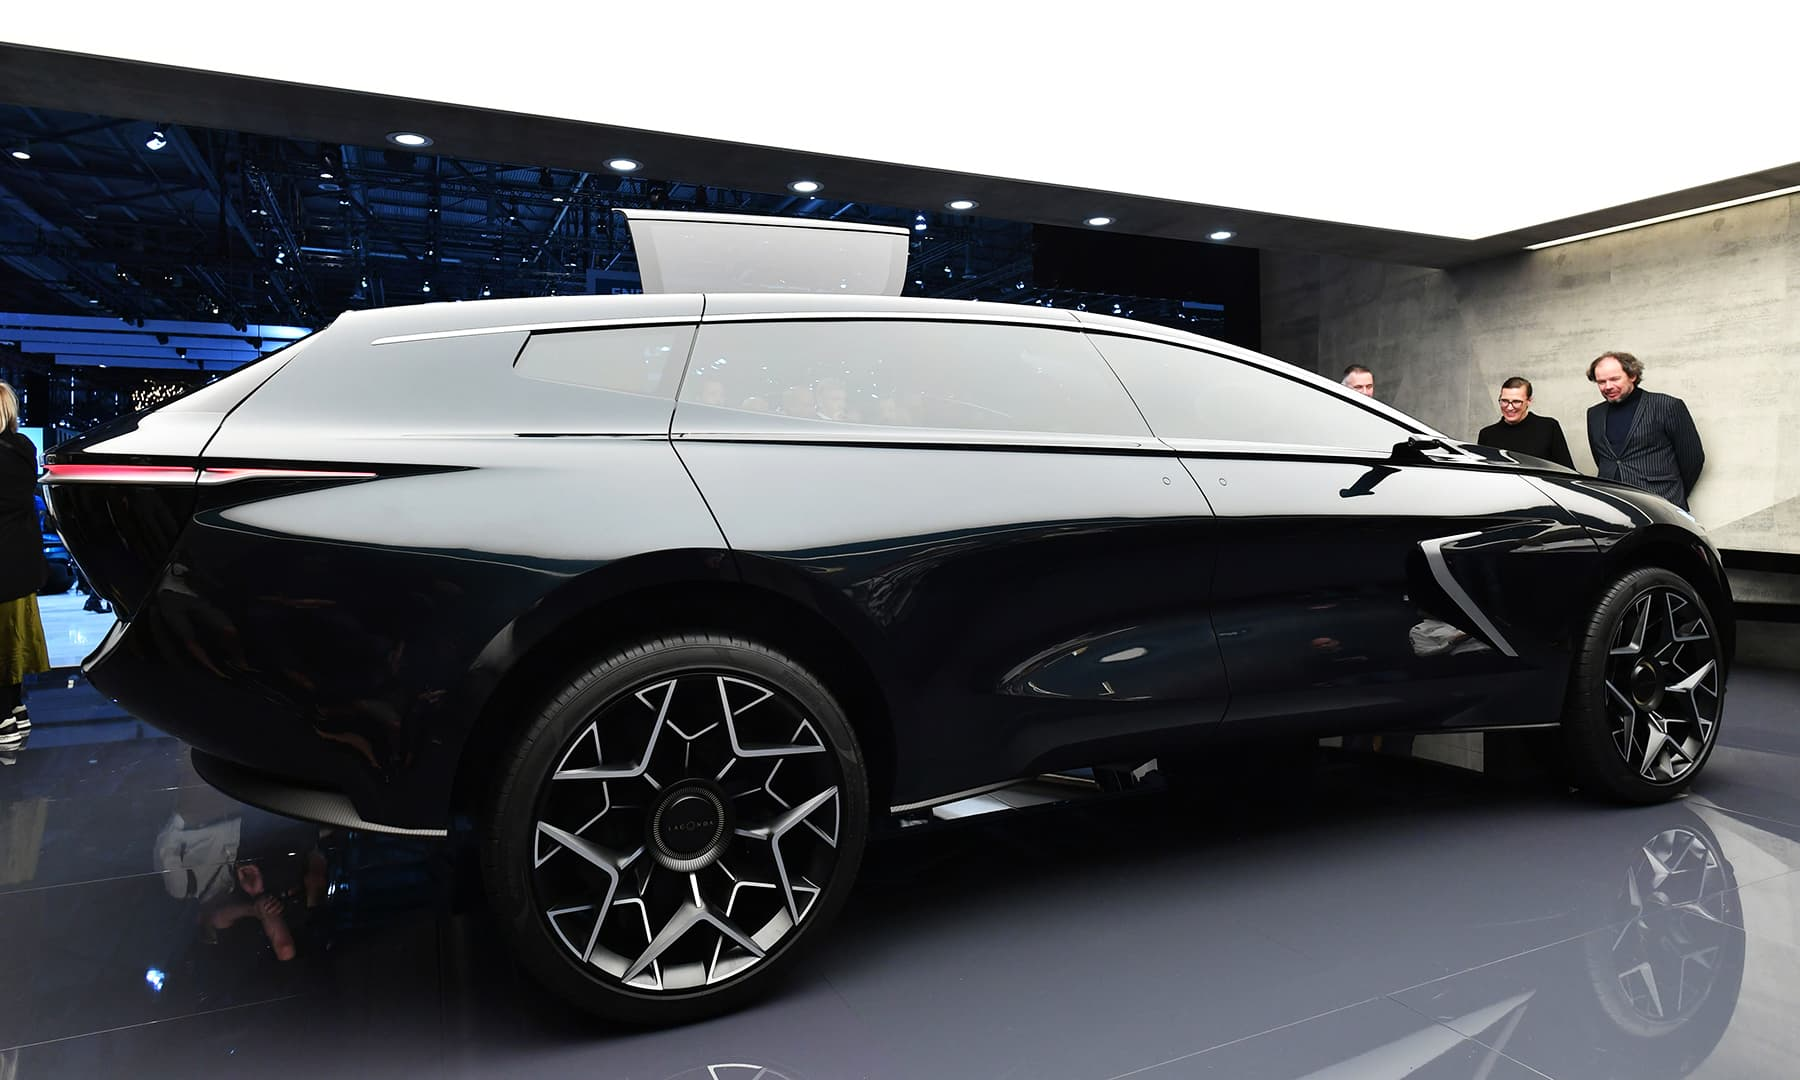 Visitors look at a Aston Martin Lagonda car on March 5 during a press day ahead of the 2019 edition of the Geneva International Motor Show. — AFP